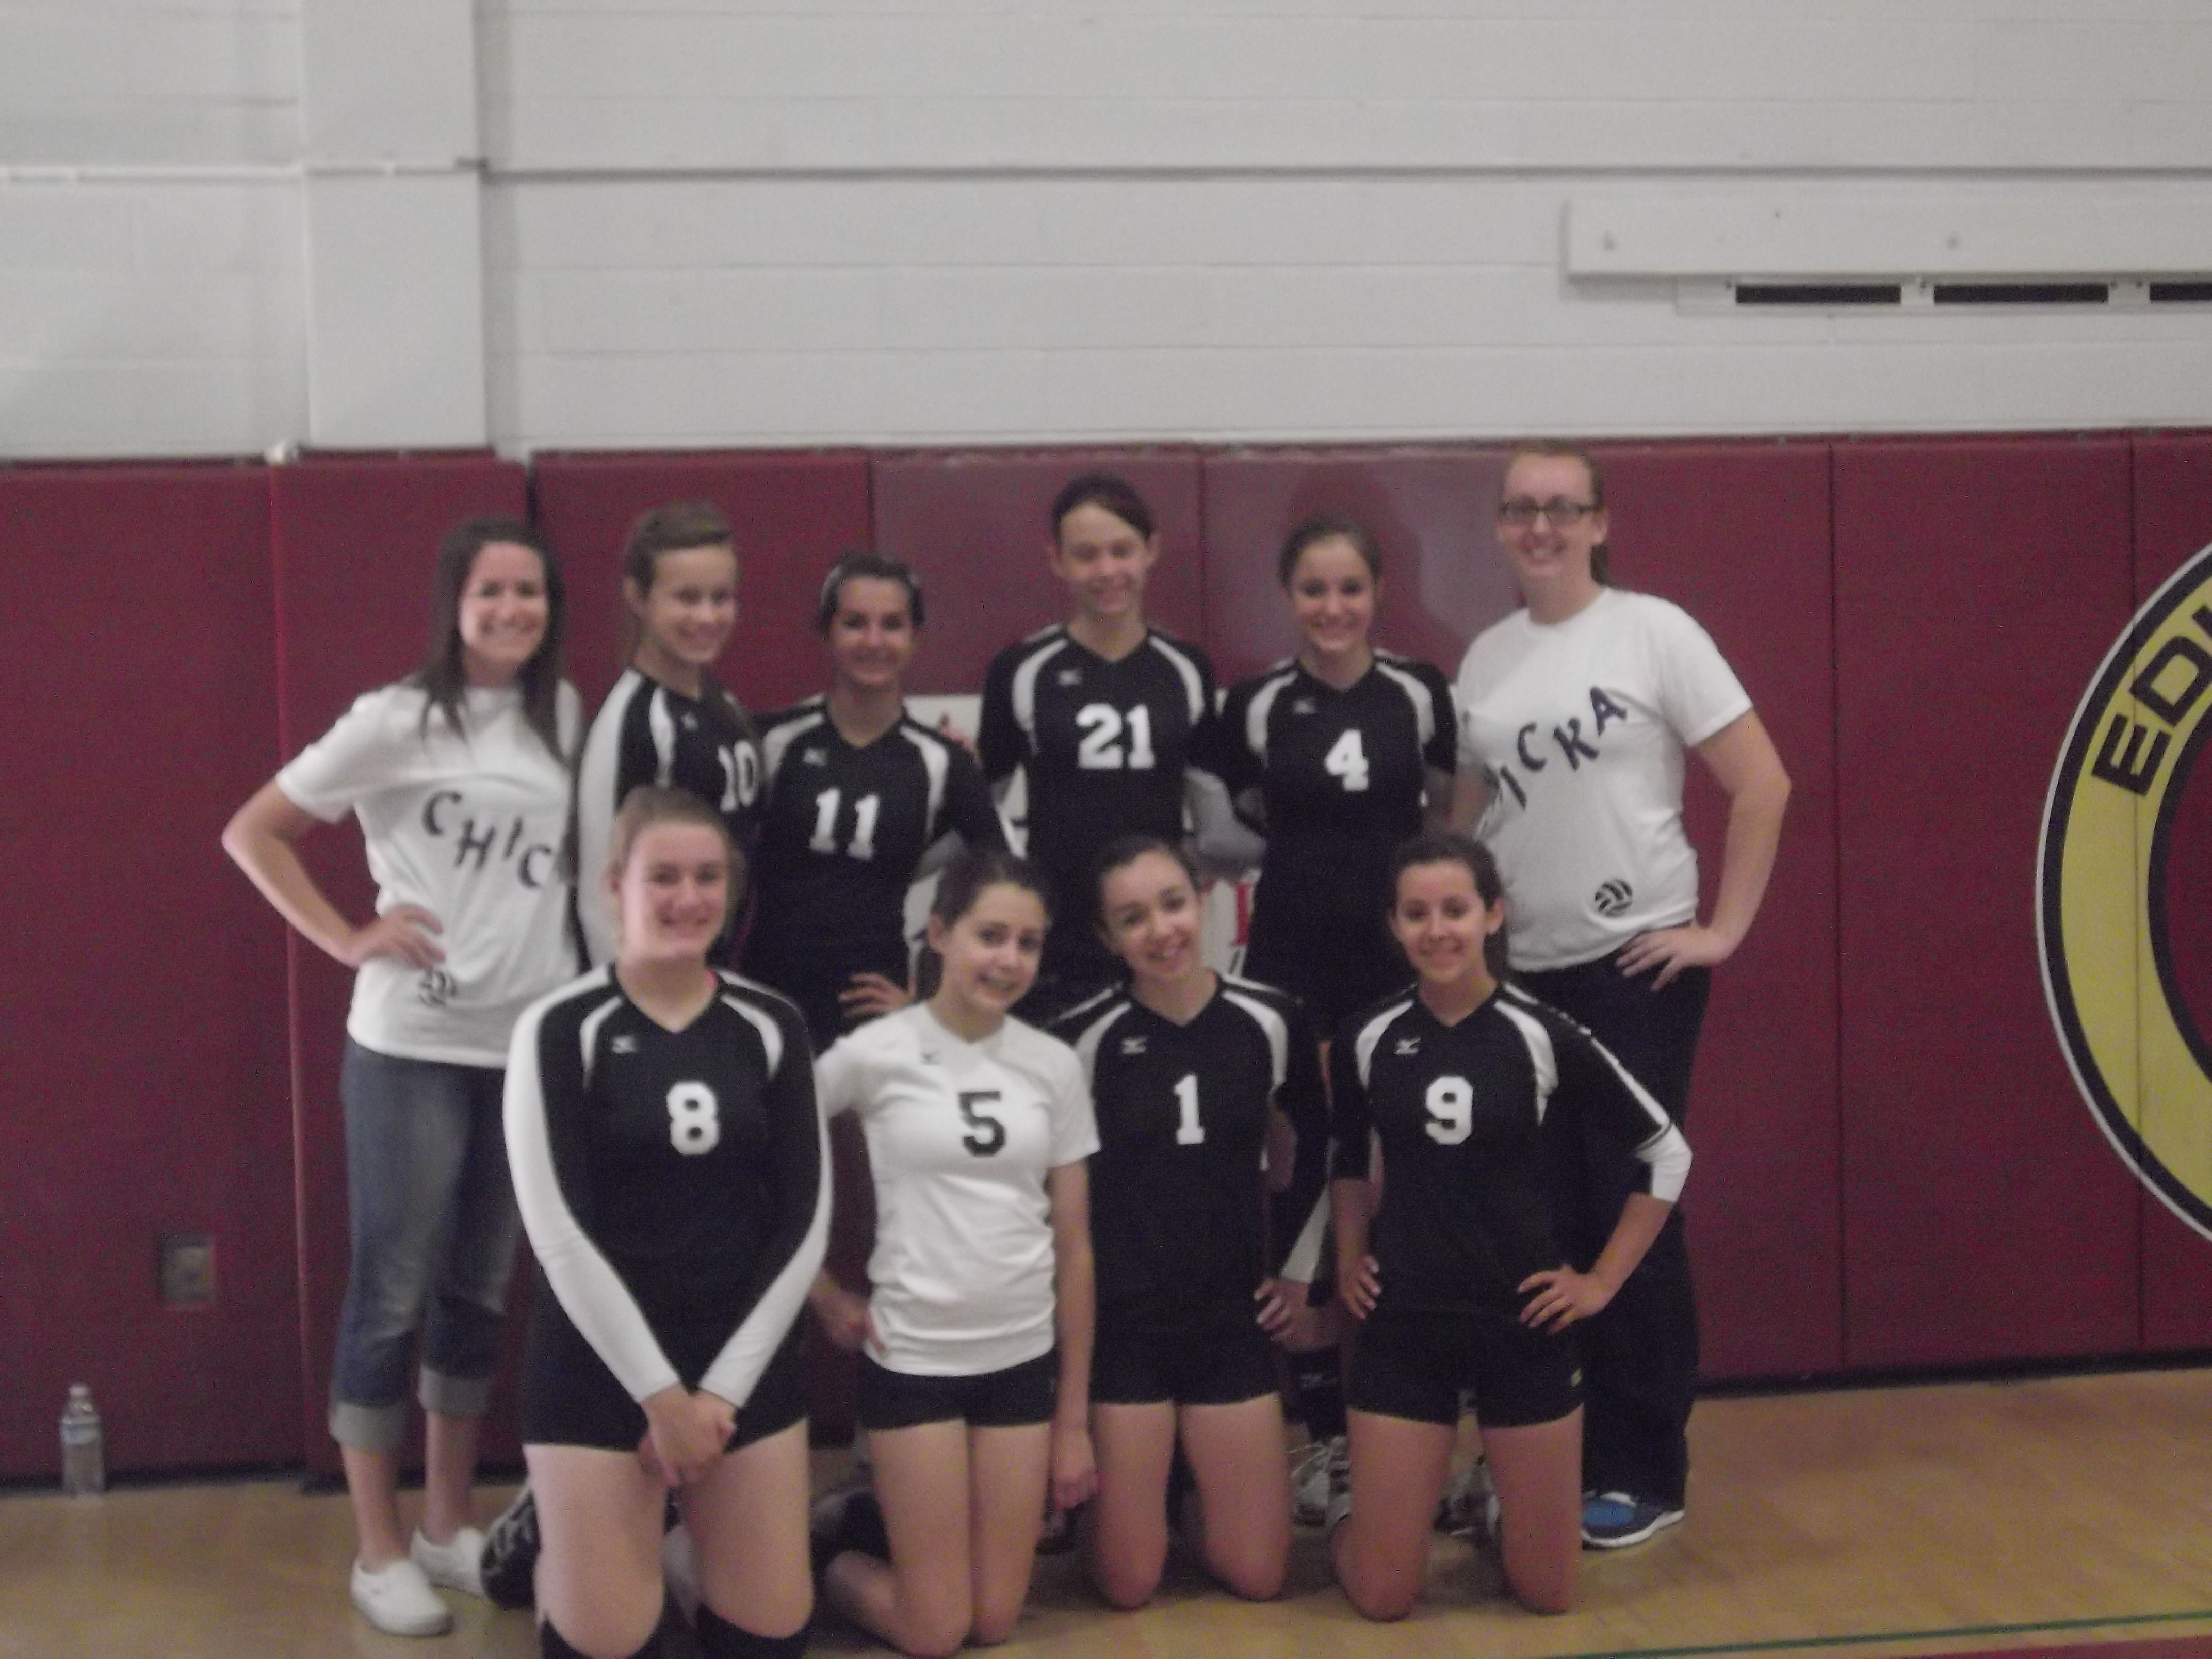 Velocity Volleyball Club Volleyball Clubs Volleyball Sports Jersey